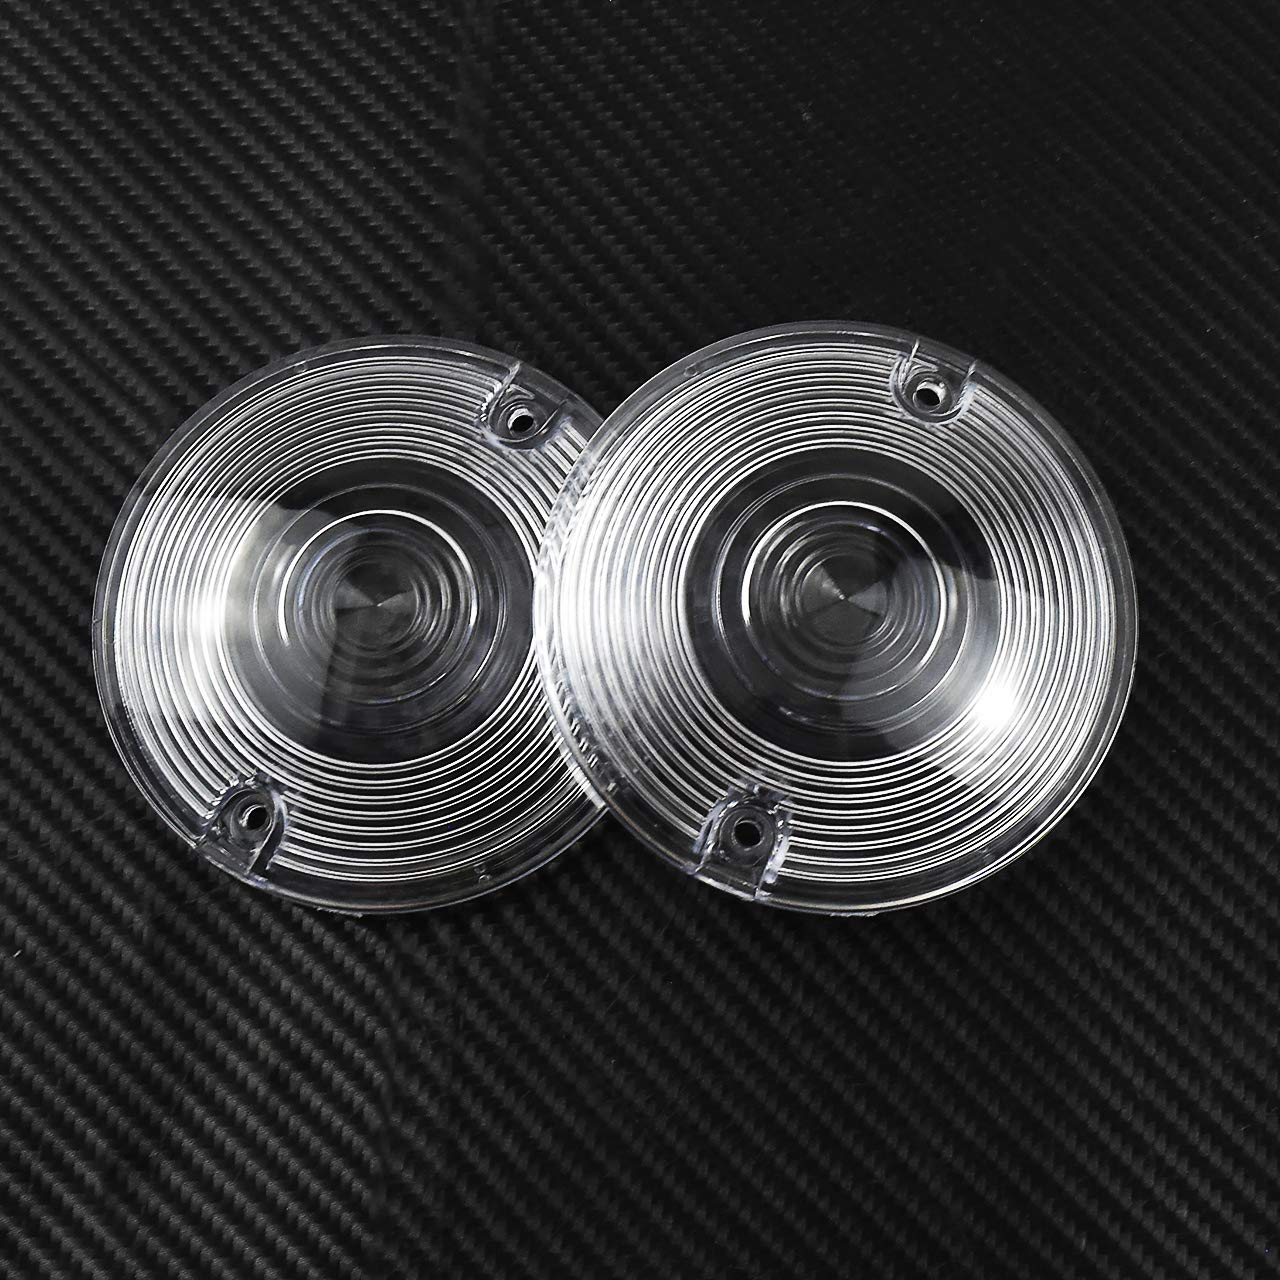 YHMTIVTU 3 1//4 Flat Clear Turn Signal Lenses Covers for Harley Touring Electra Glide Road King,2 pcs